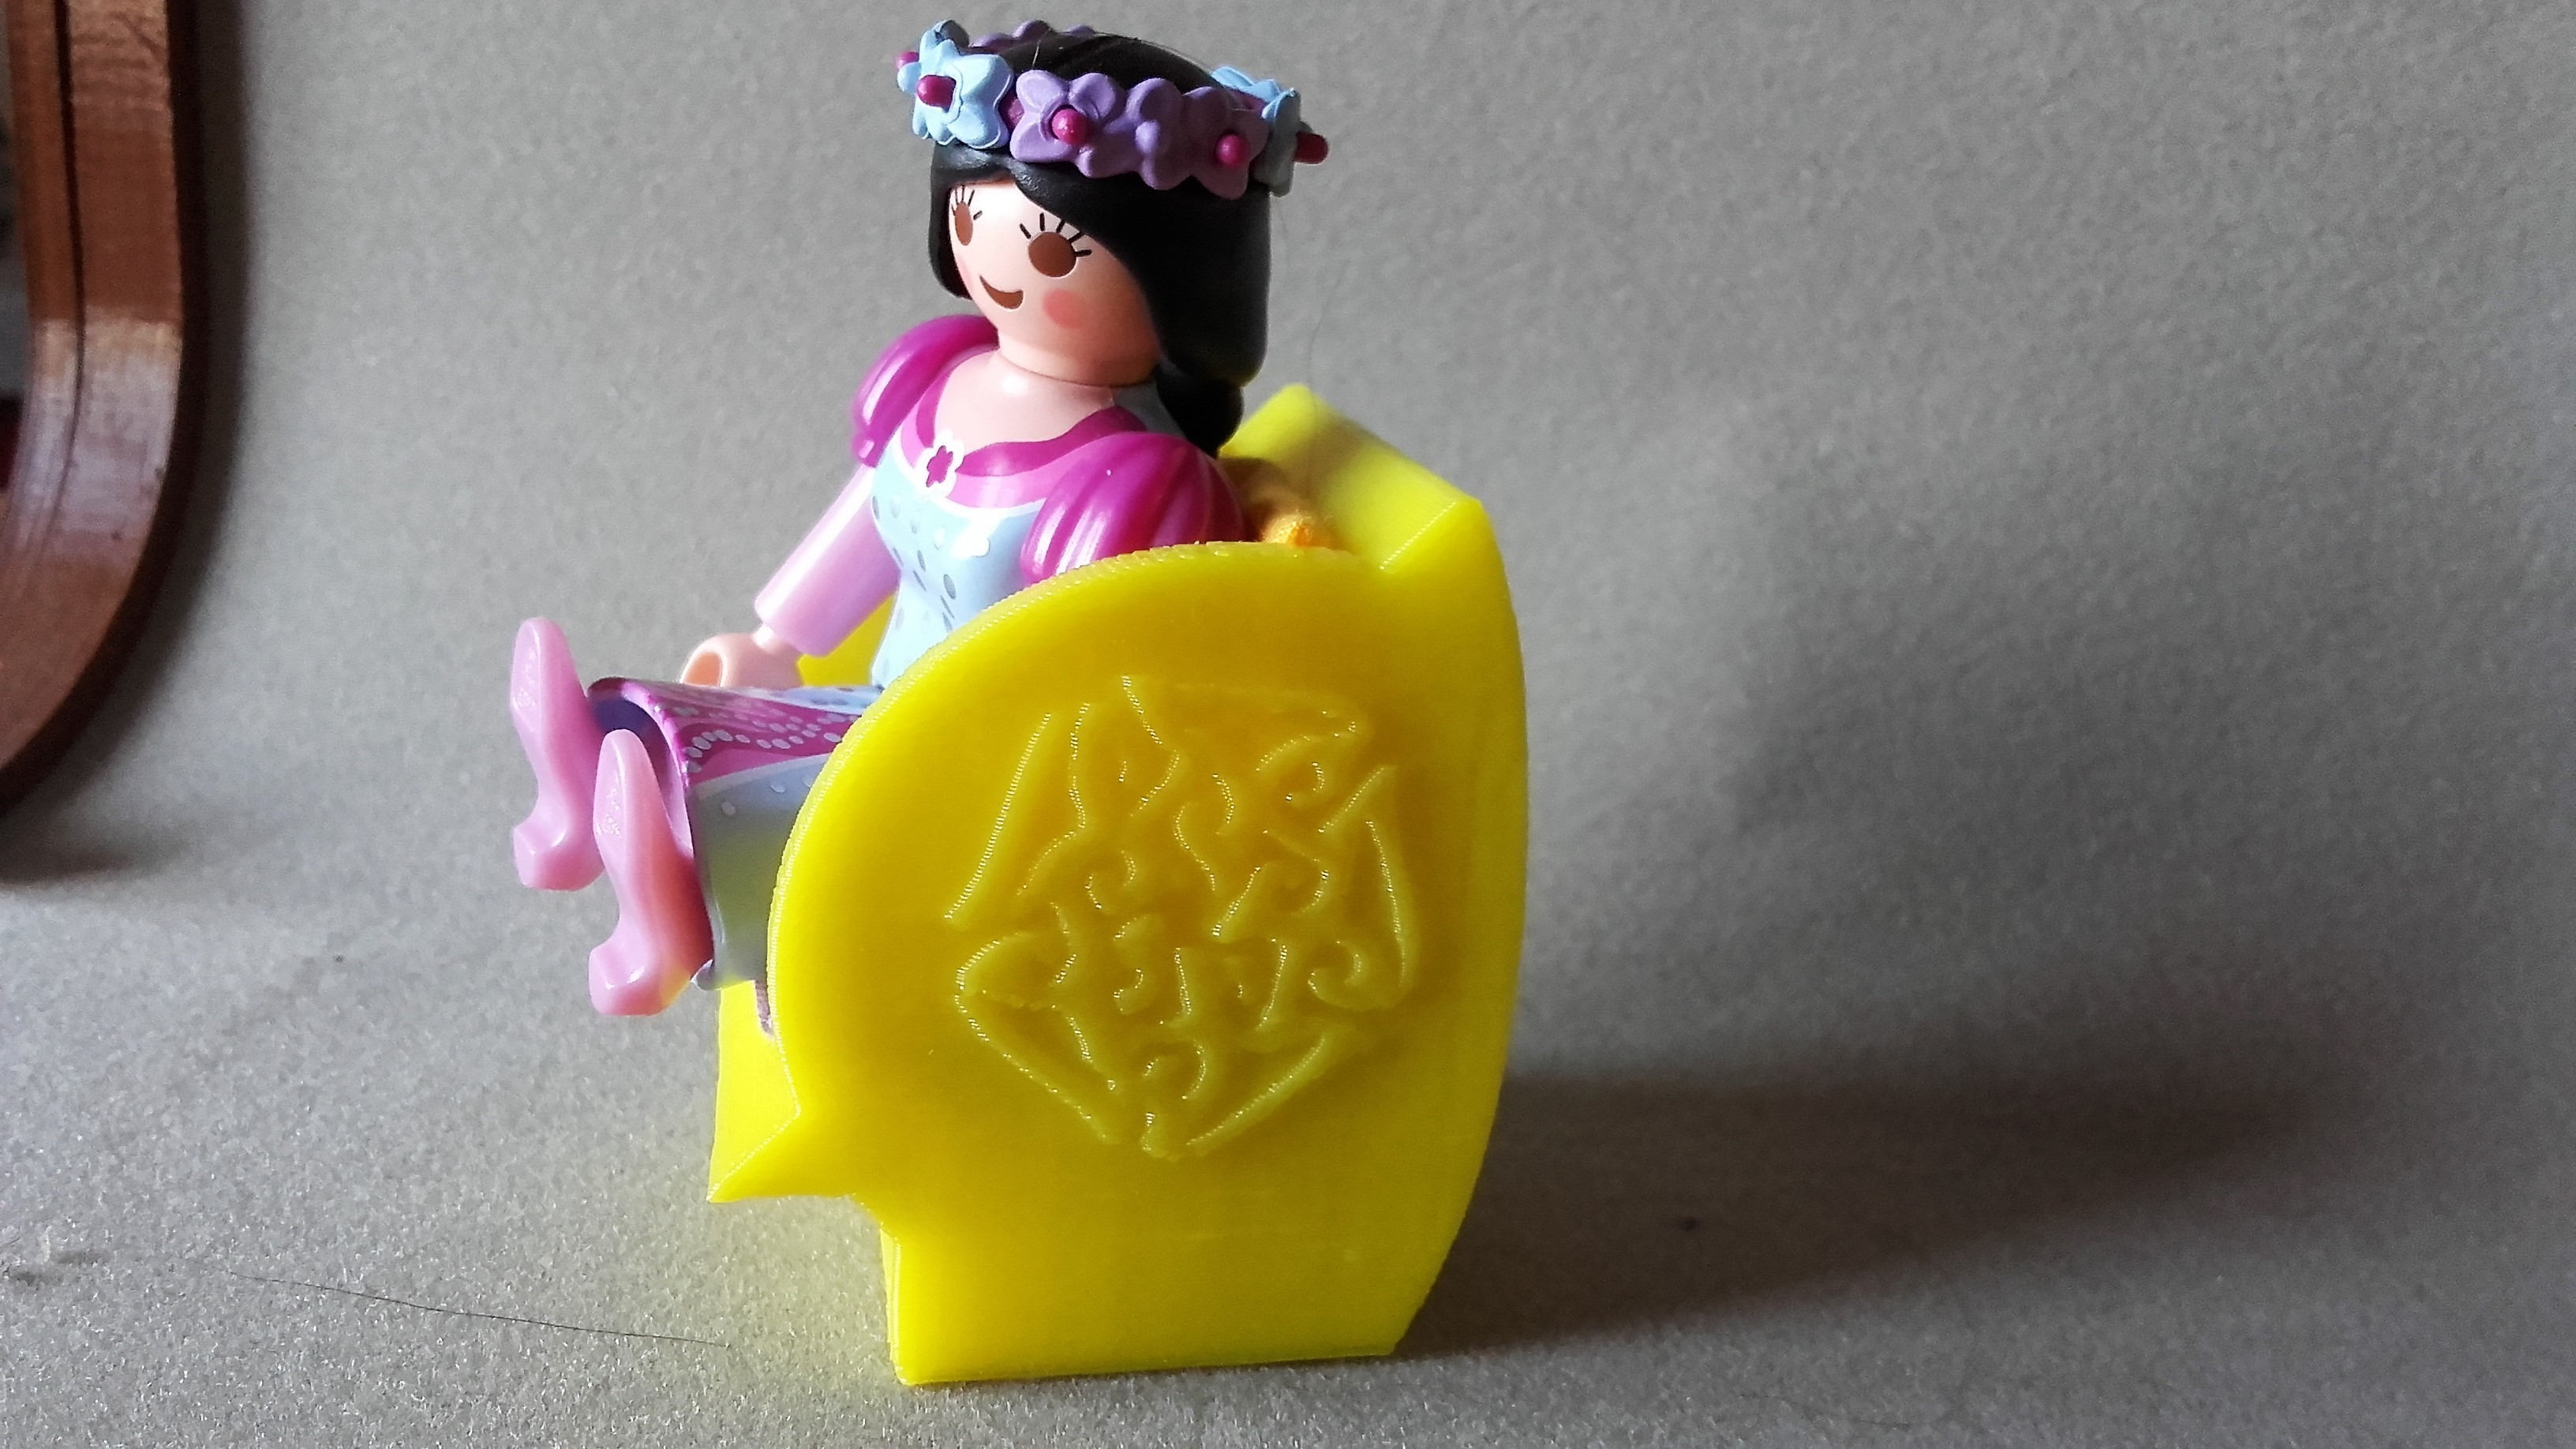 20170317_113652.jpg Download free STL file armchair for playmobil • Object to 3D print, catf3d